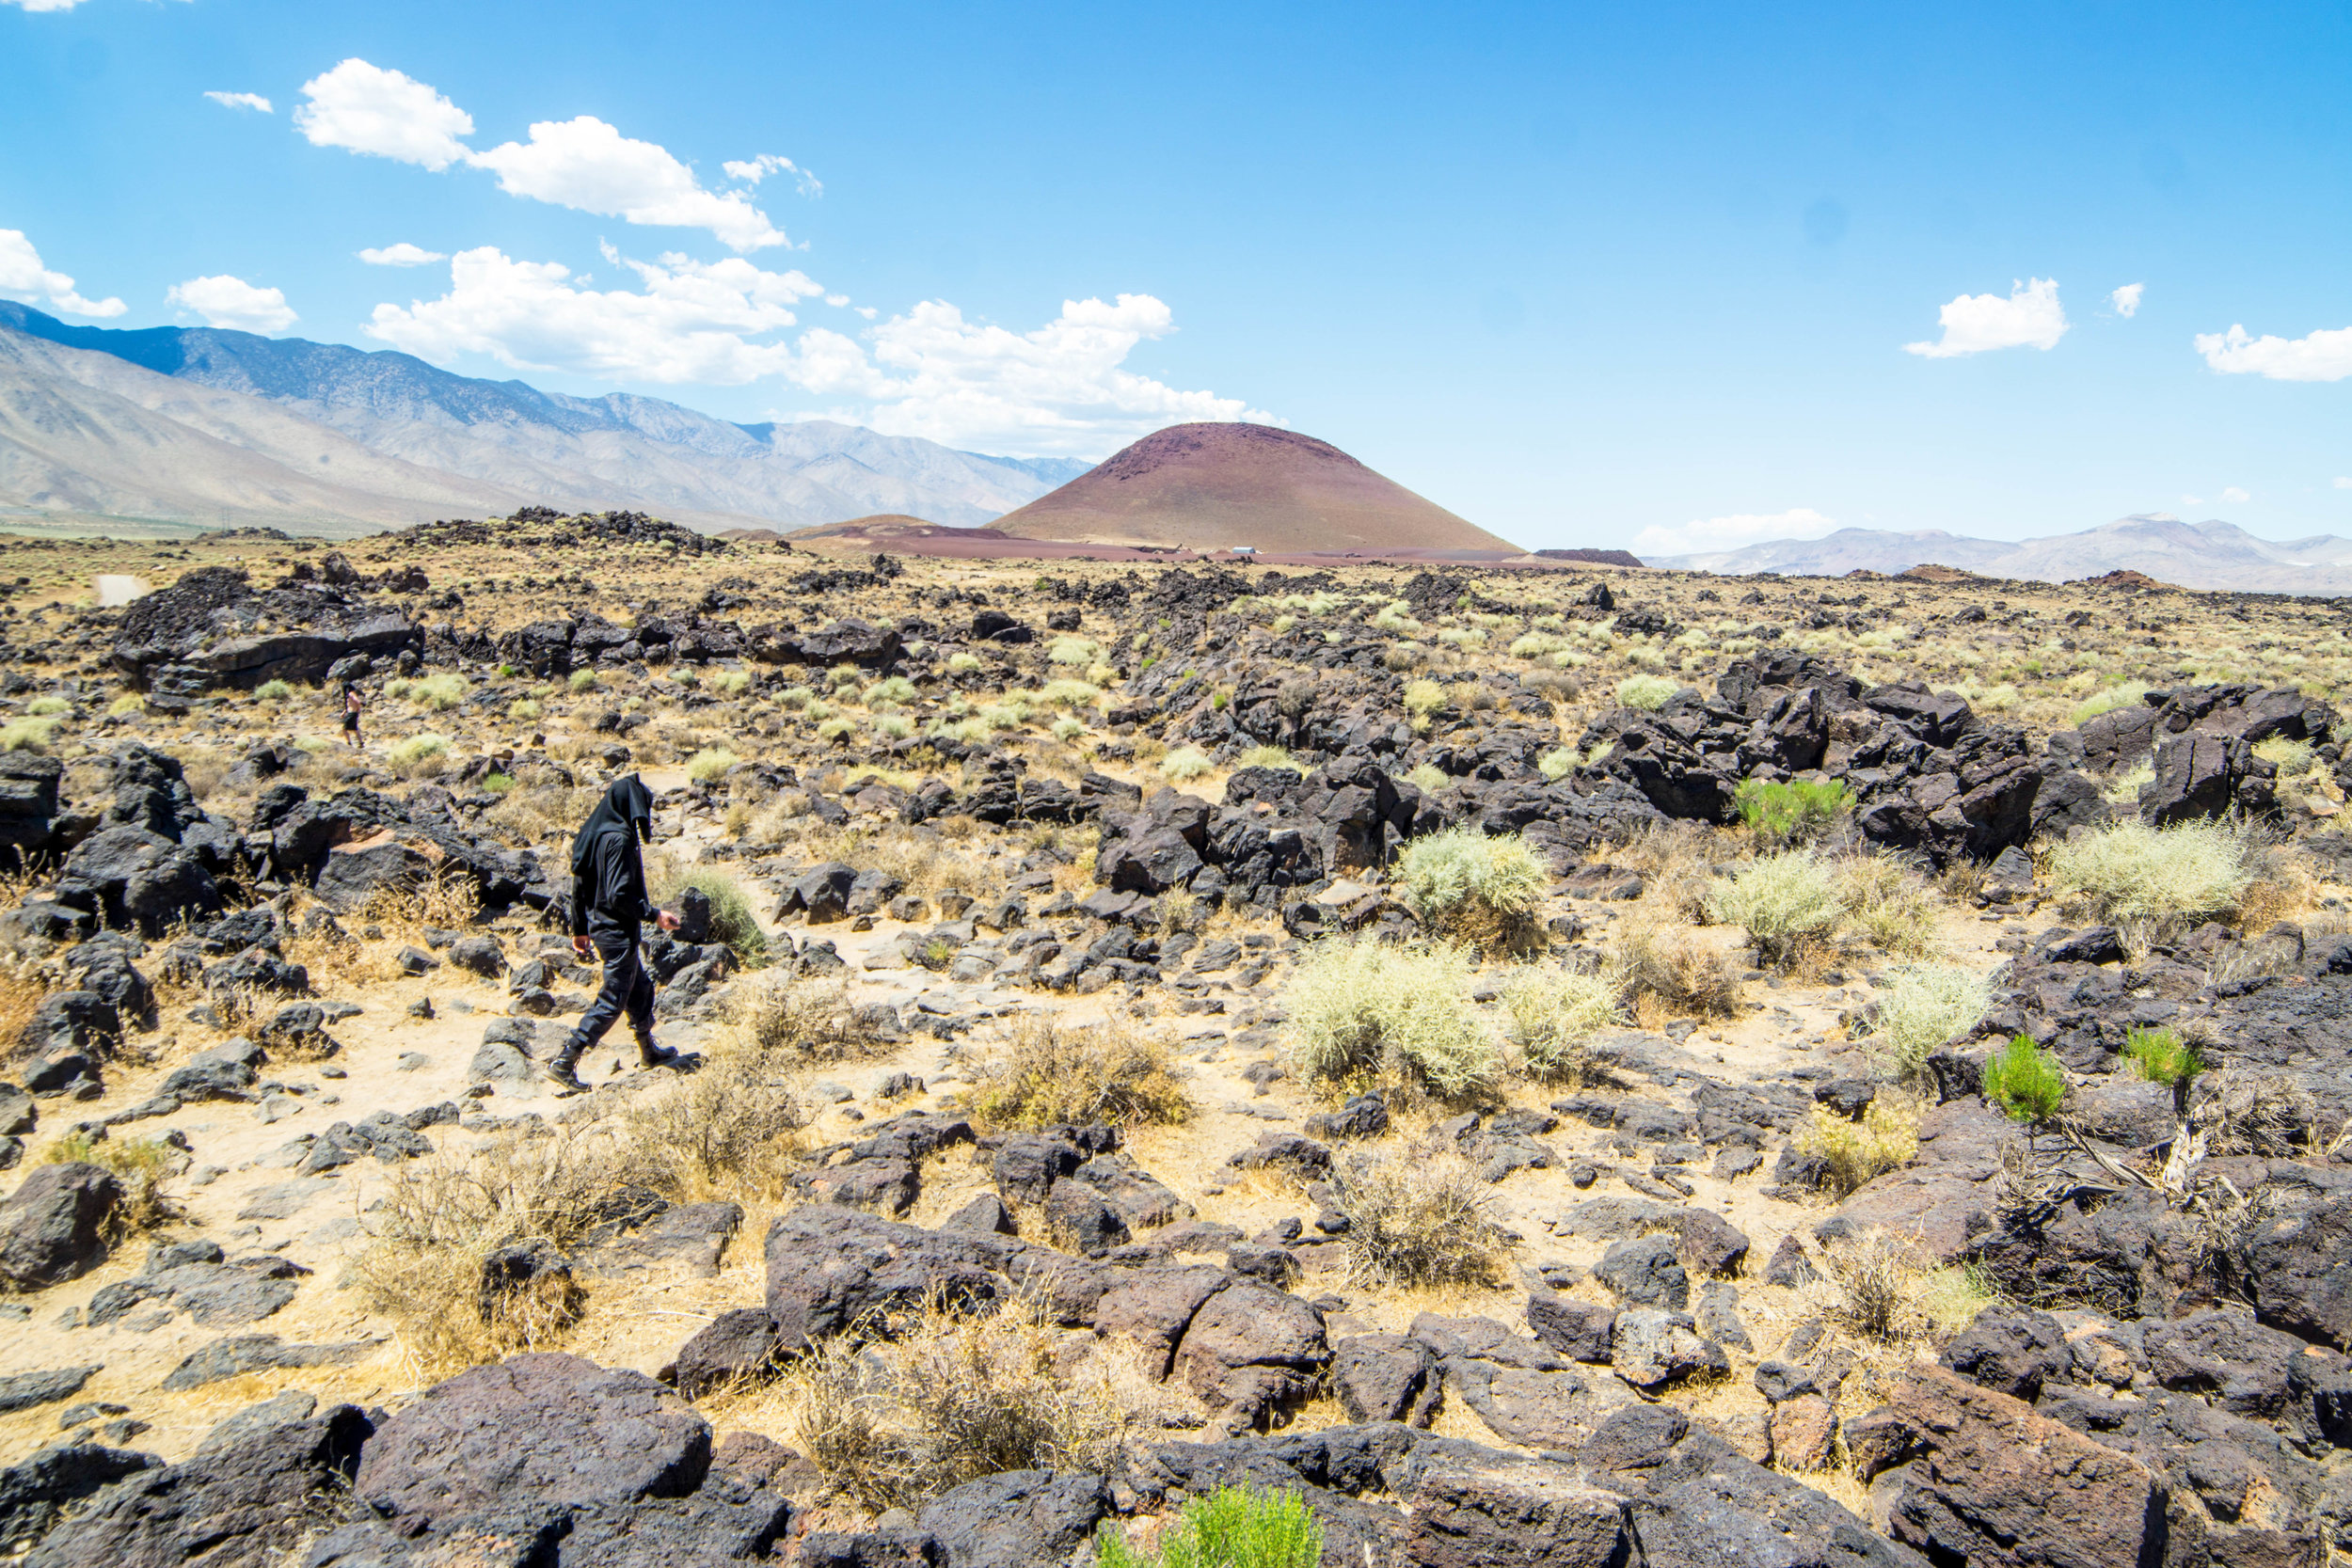 The mars red cinder cone rises above the lava rock, offering one final grand view on our walk back to the car. Until next time comrades! Thanks for tagging along on our misadventure.